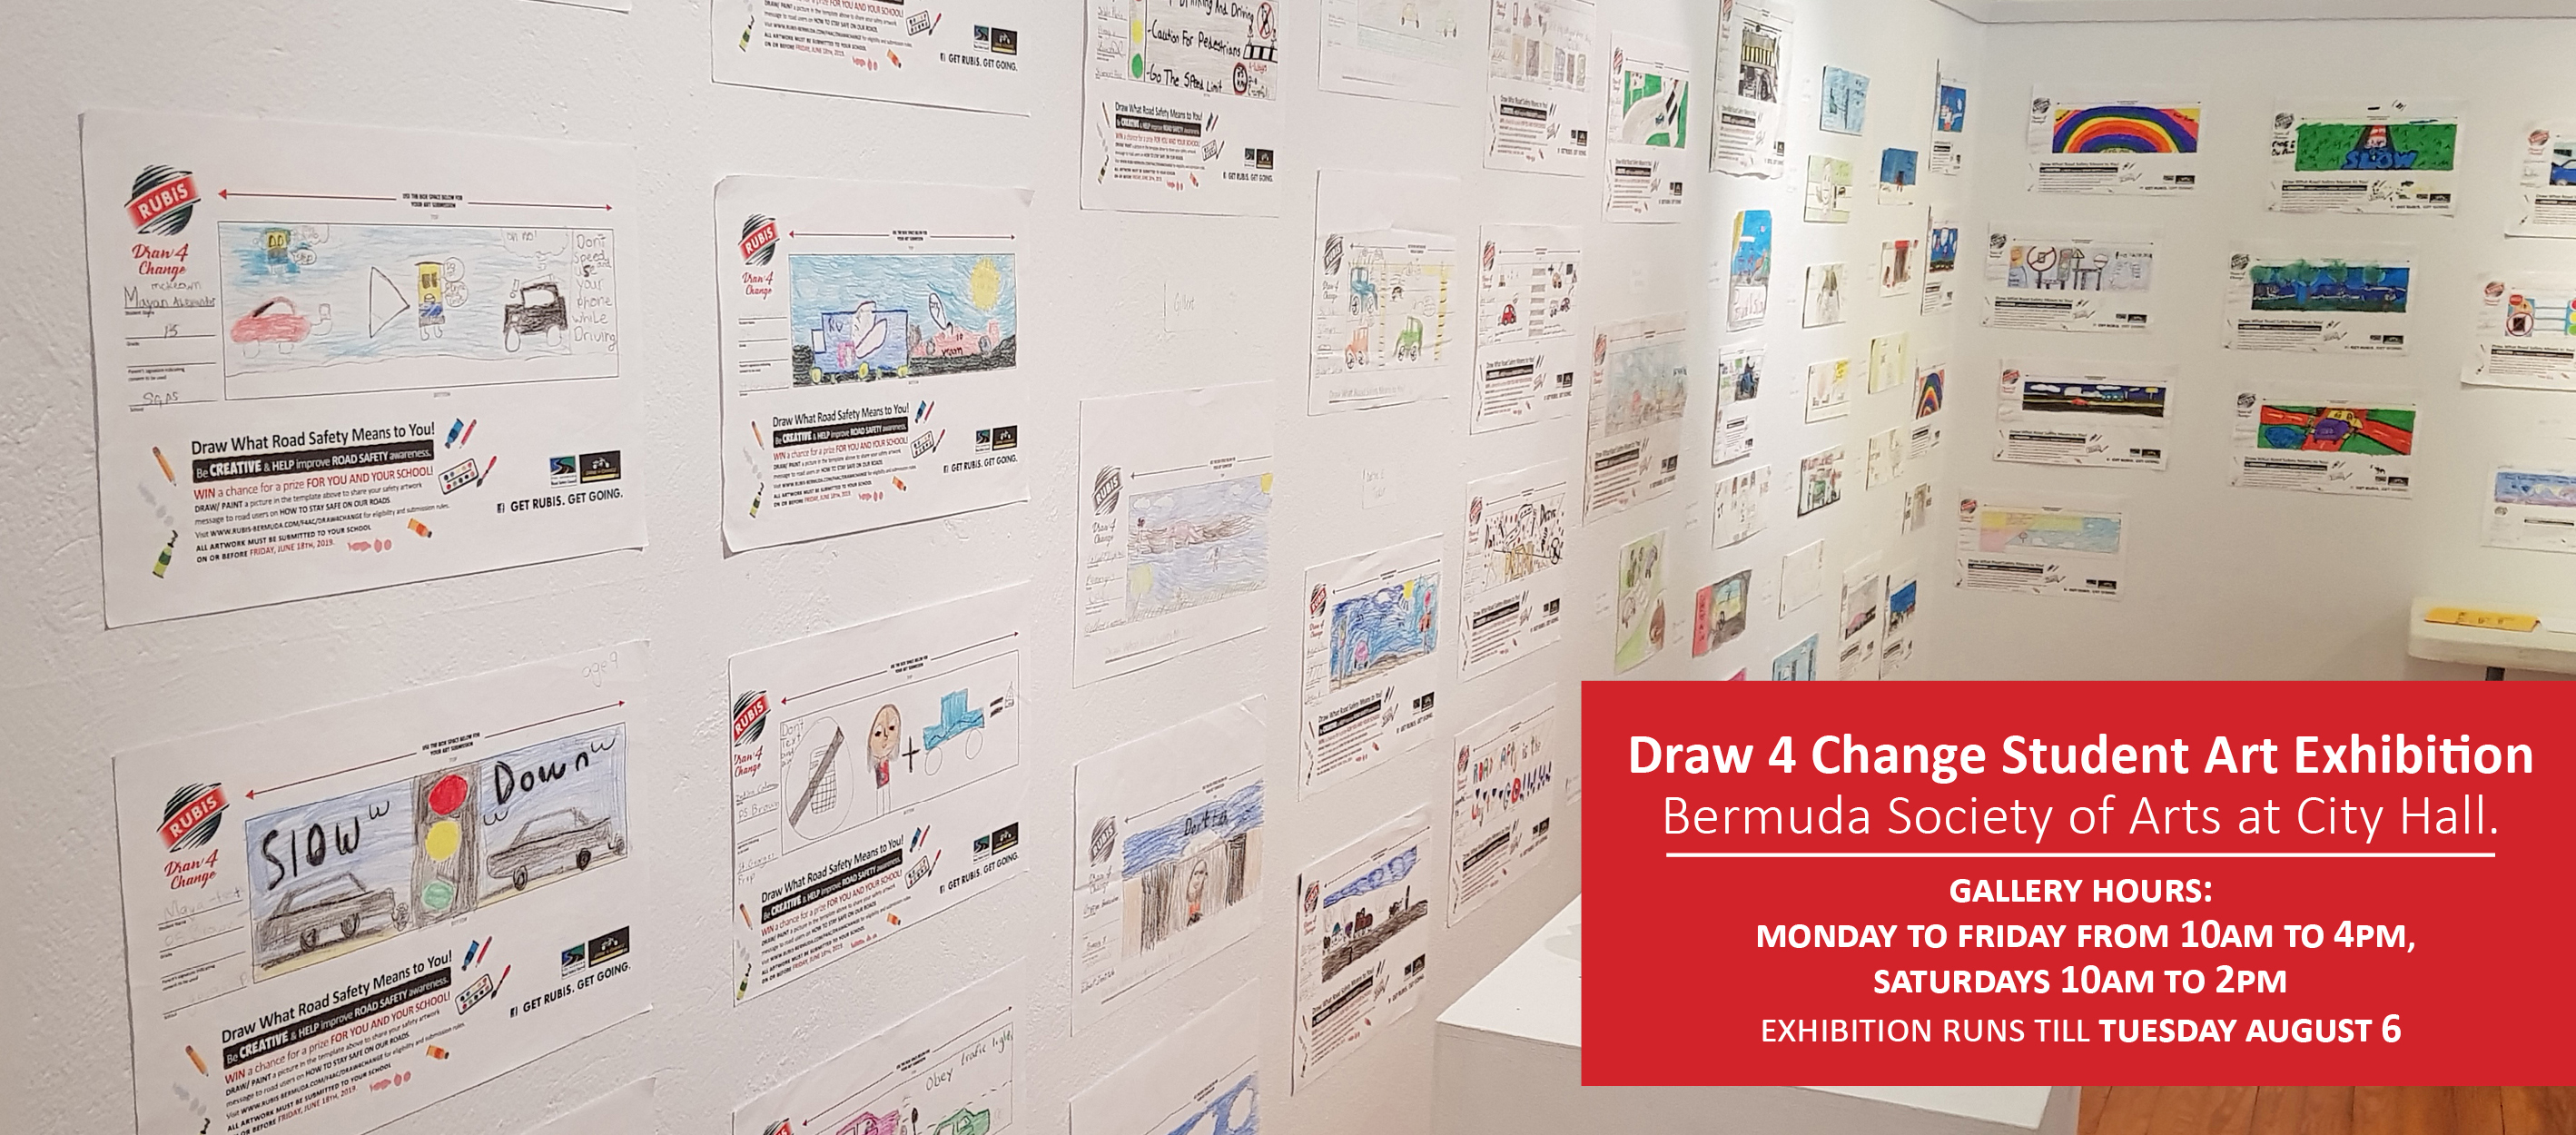 Draw 4 Chnge St Art Exhib